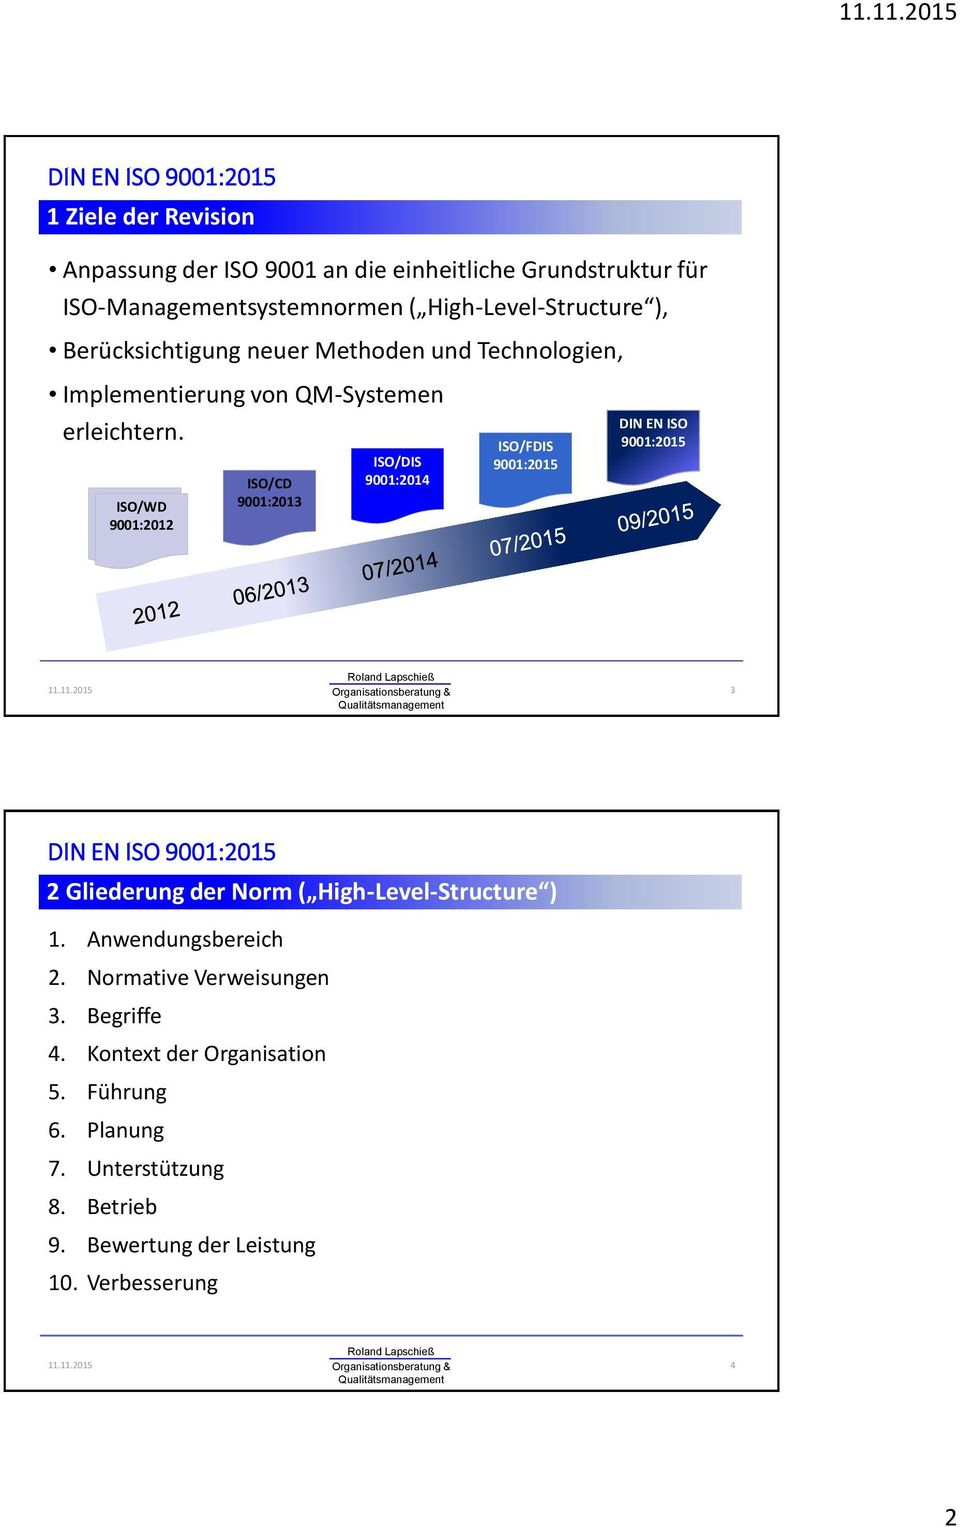 ISO/WD 9001:2012 ISO/CD 9001:2013 ISO/DIS 9001:2014 ISO/FDIS 9001:2015 DIN EN ISO 9001:2015 3 2 Gliederung der Norm ( High-Level-Structure